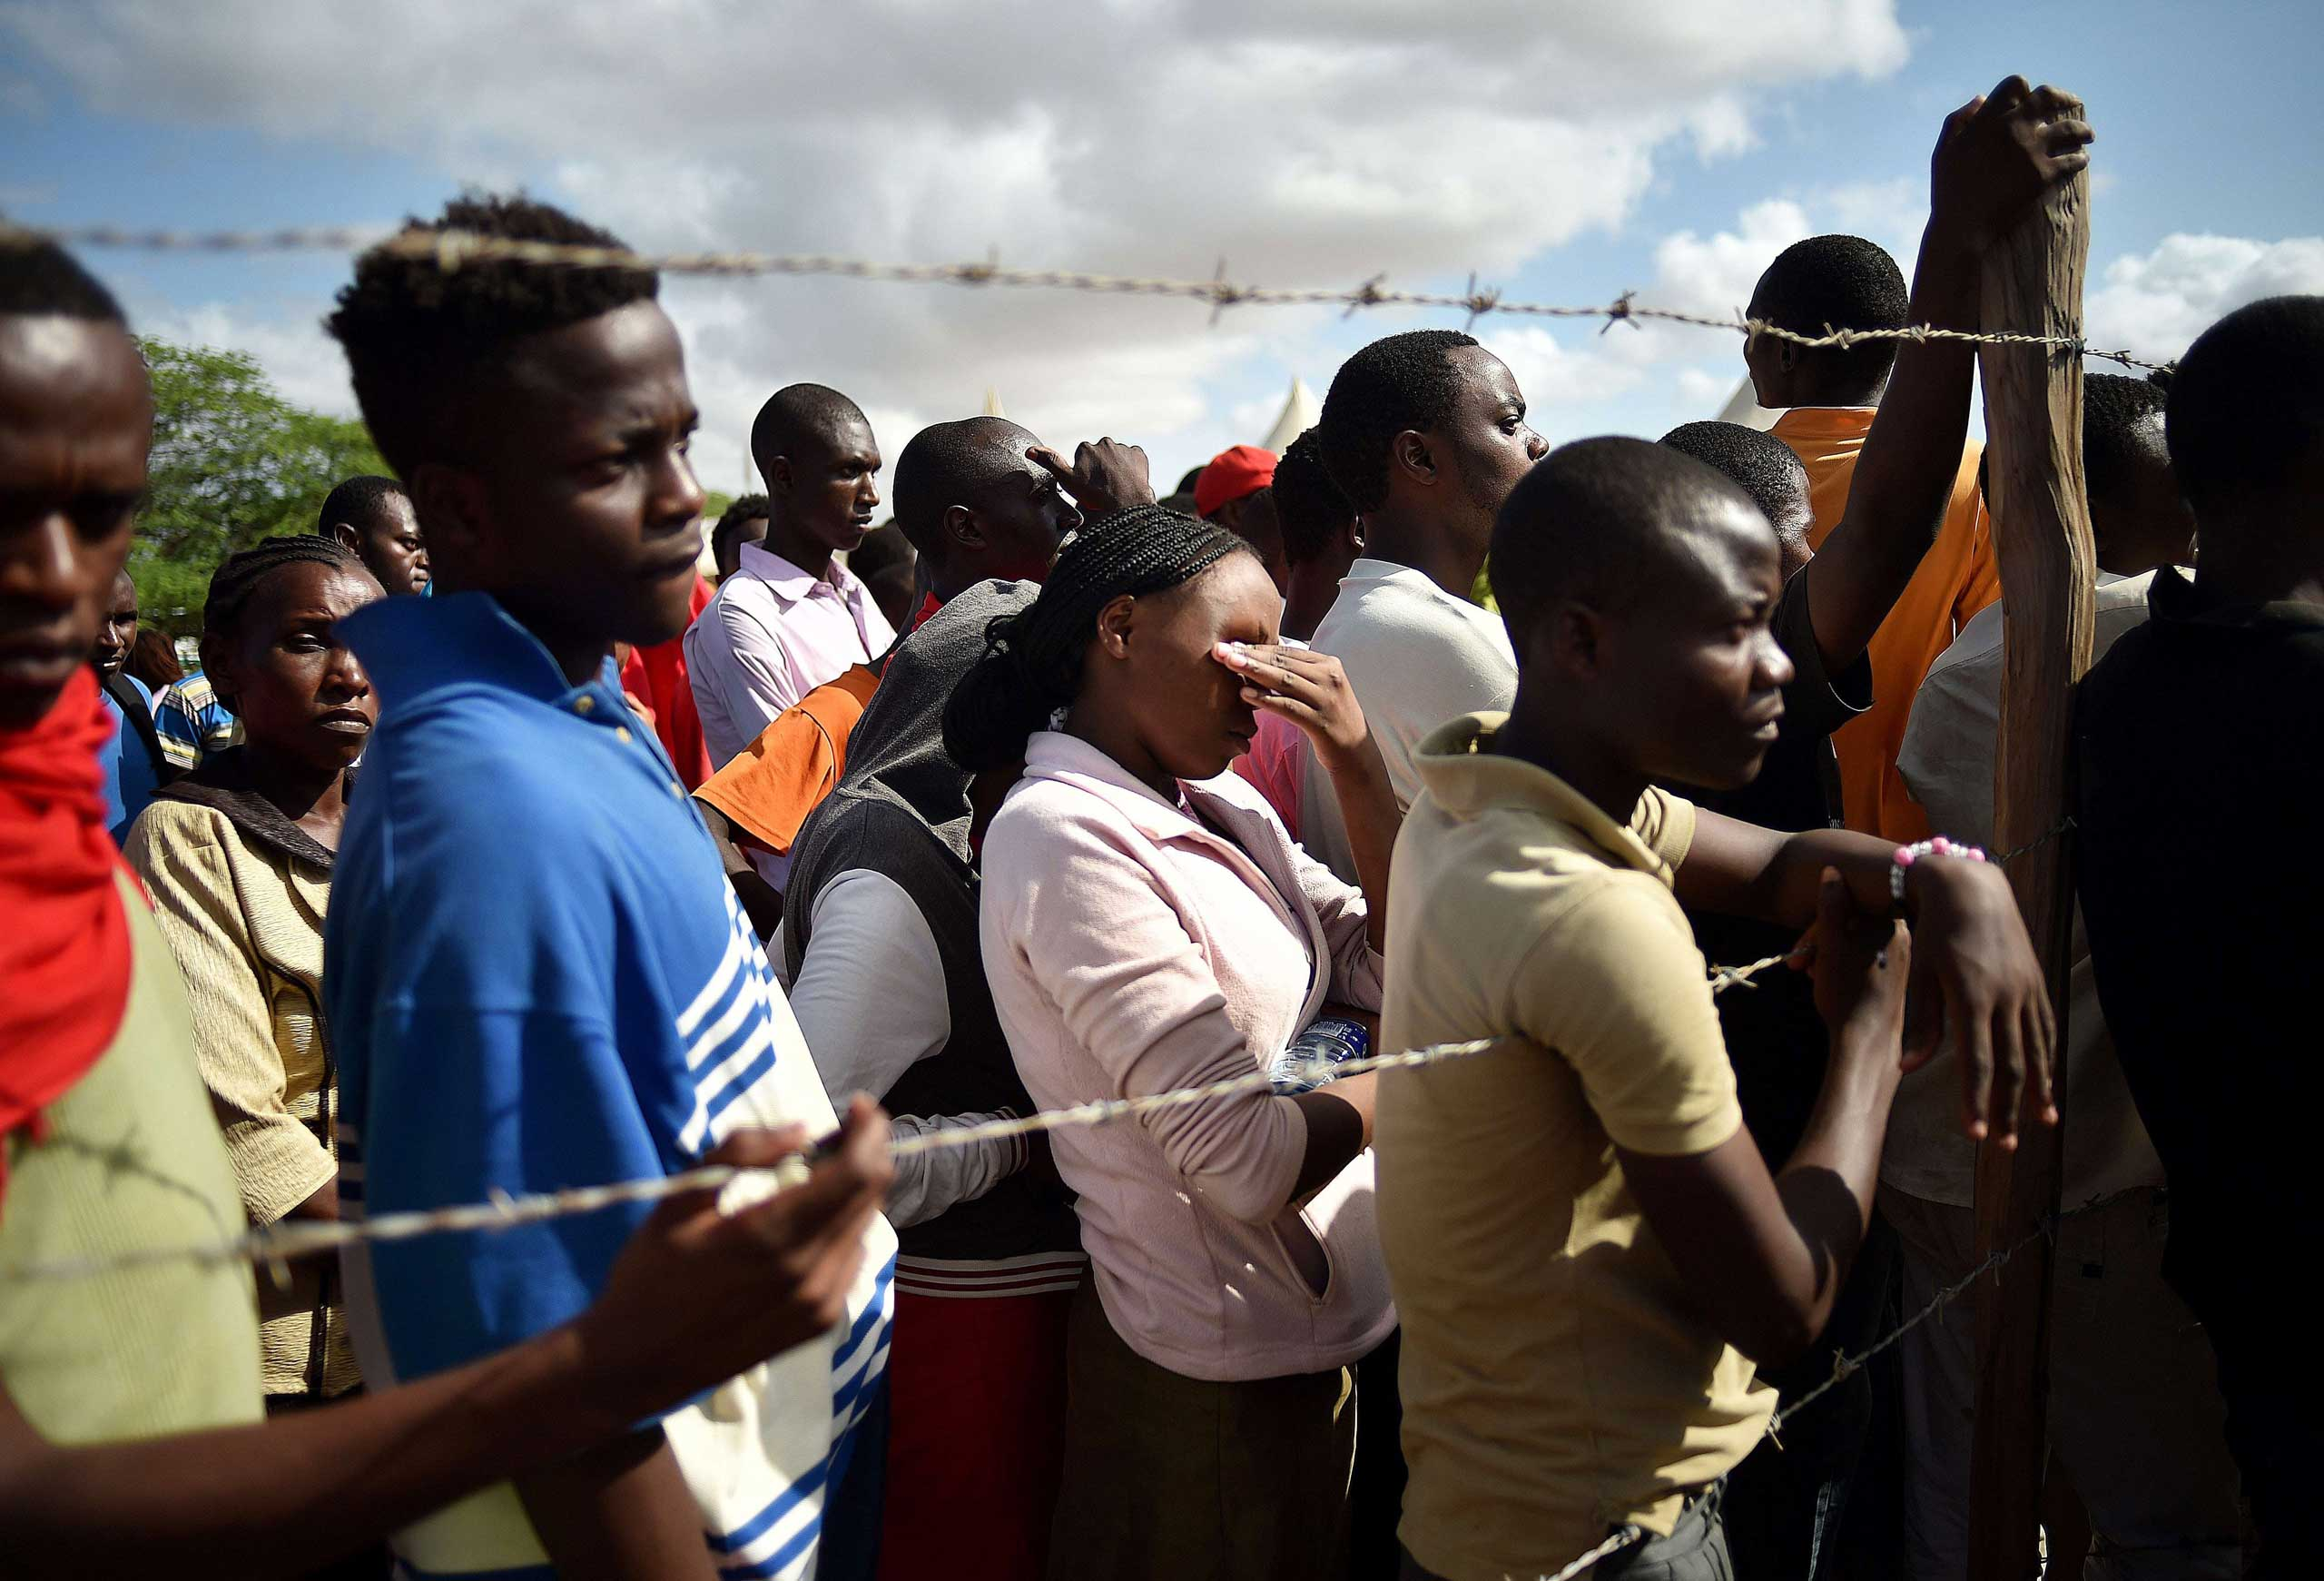 Students evacuated from Garissa University College listen to an address by Interior Minister for Security Joseph Ole Nkaissery before they are transported to their home regions from a holding area on April 3, 2015.